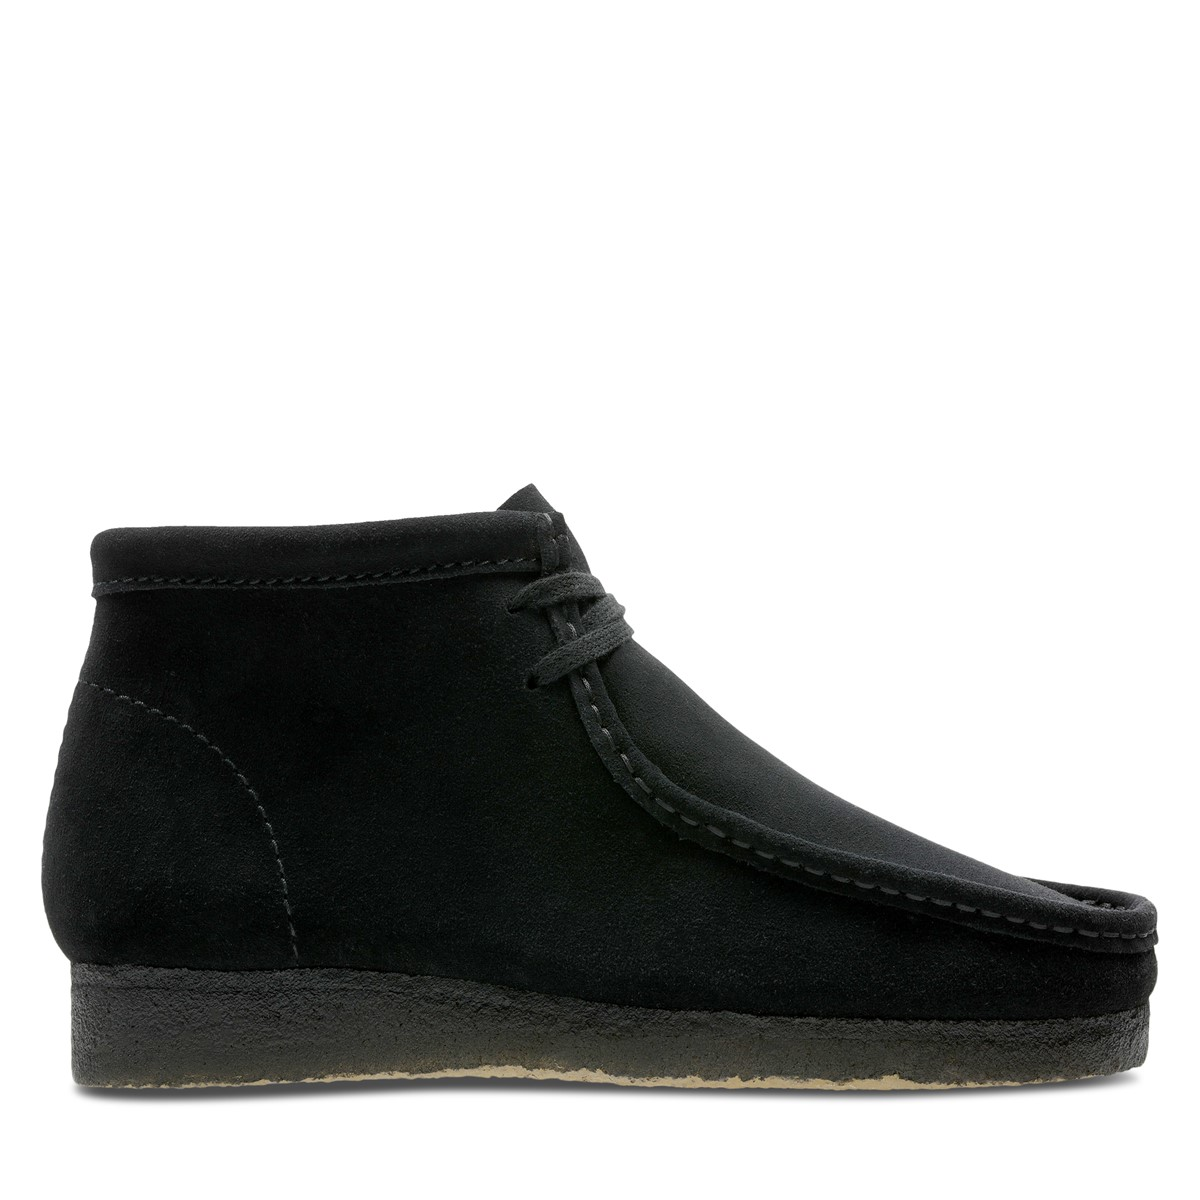 Men's Wallabee Moccassin Boots in Black